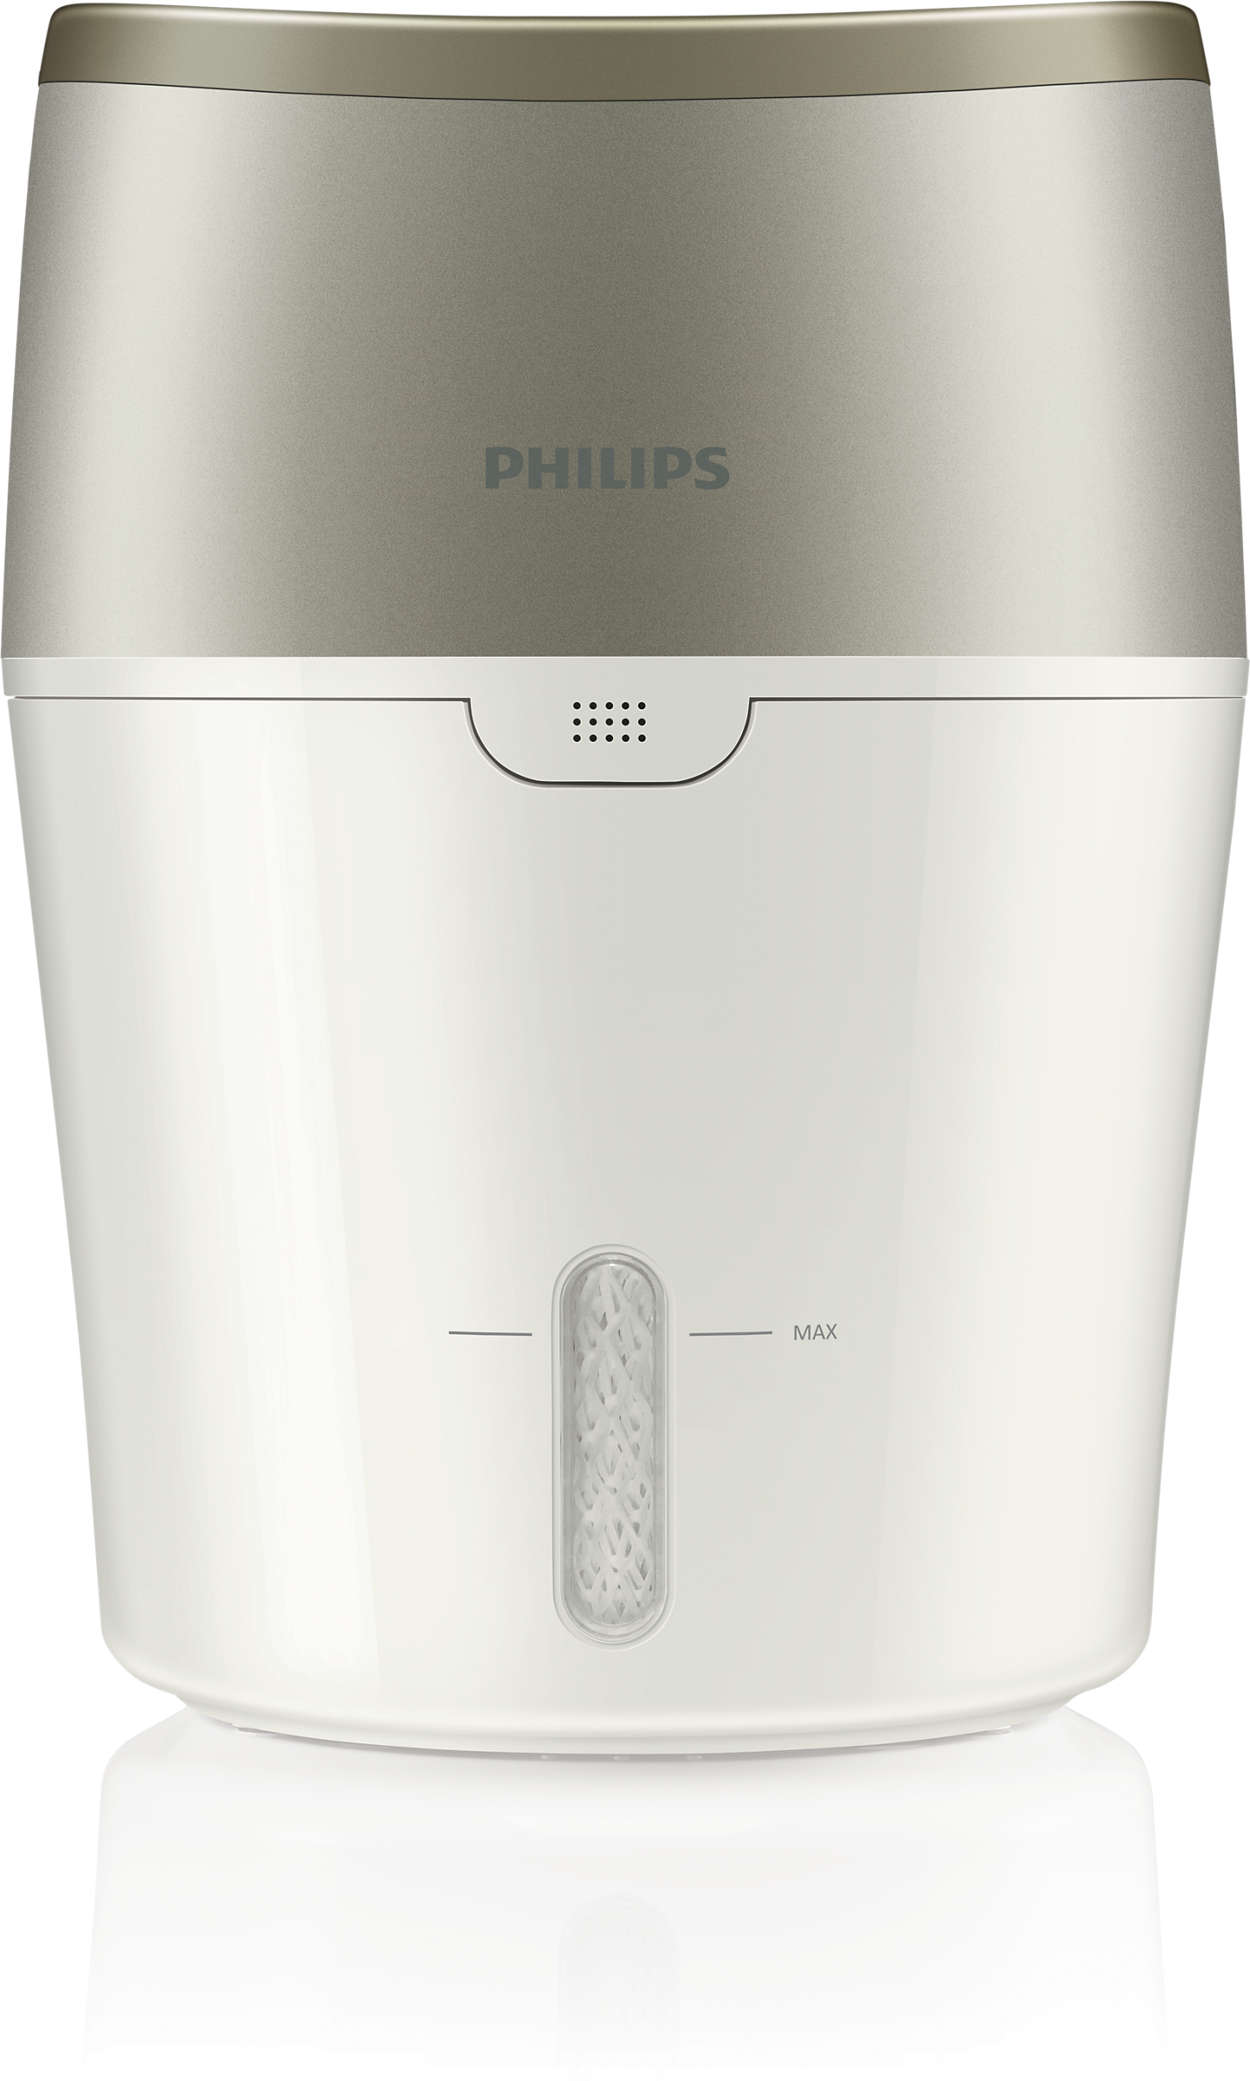 Air humidifier HU4803/01 Philips #4D4631